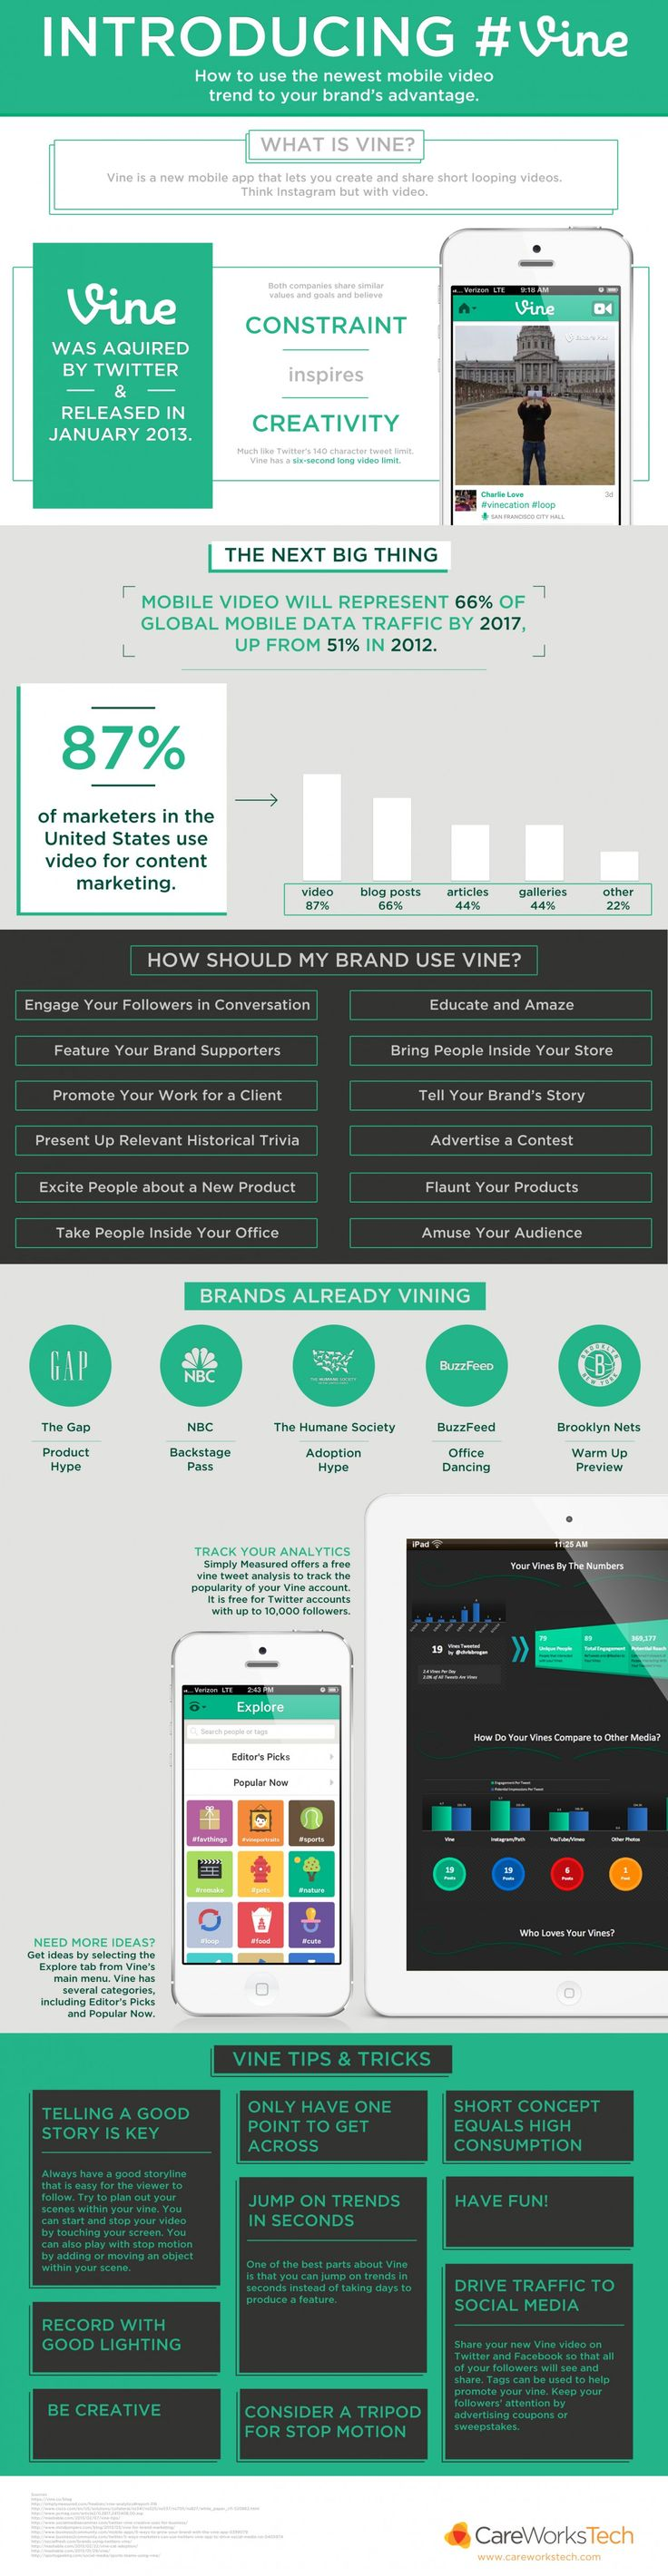 Why Twitter's Vine Is The Next Big Thing For Brands [INFOGRAPHIC]